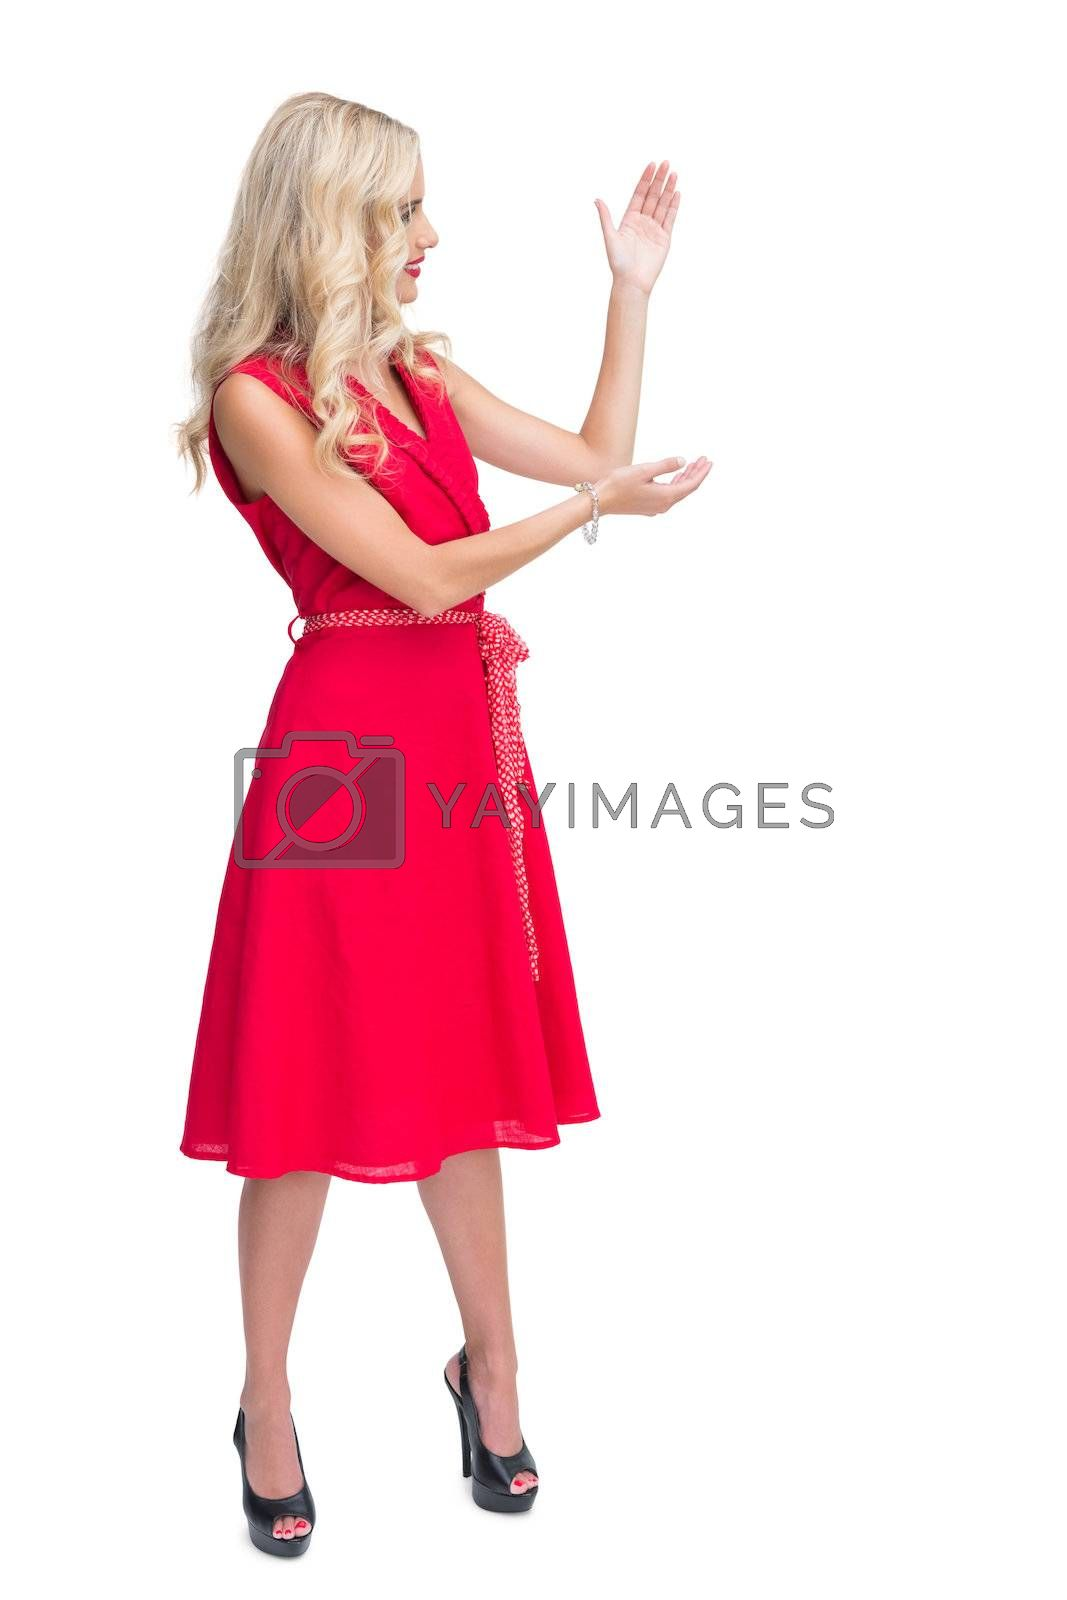 Smiling glamorous woman presenting something by Wavebreakmedia